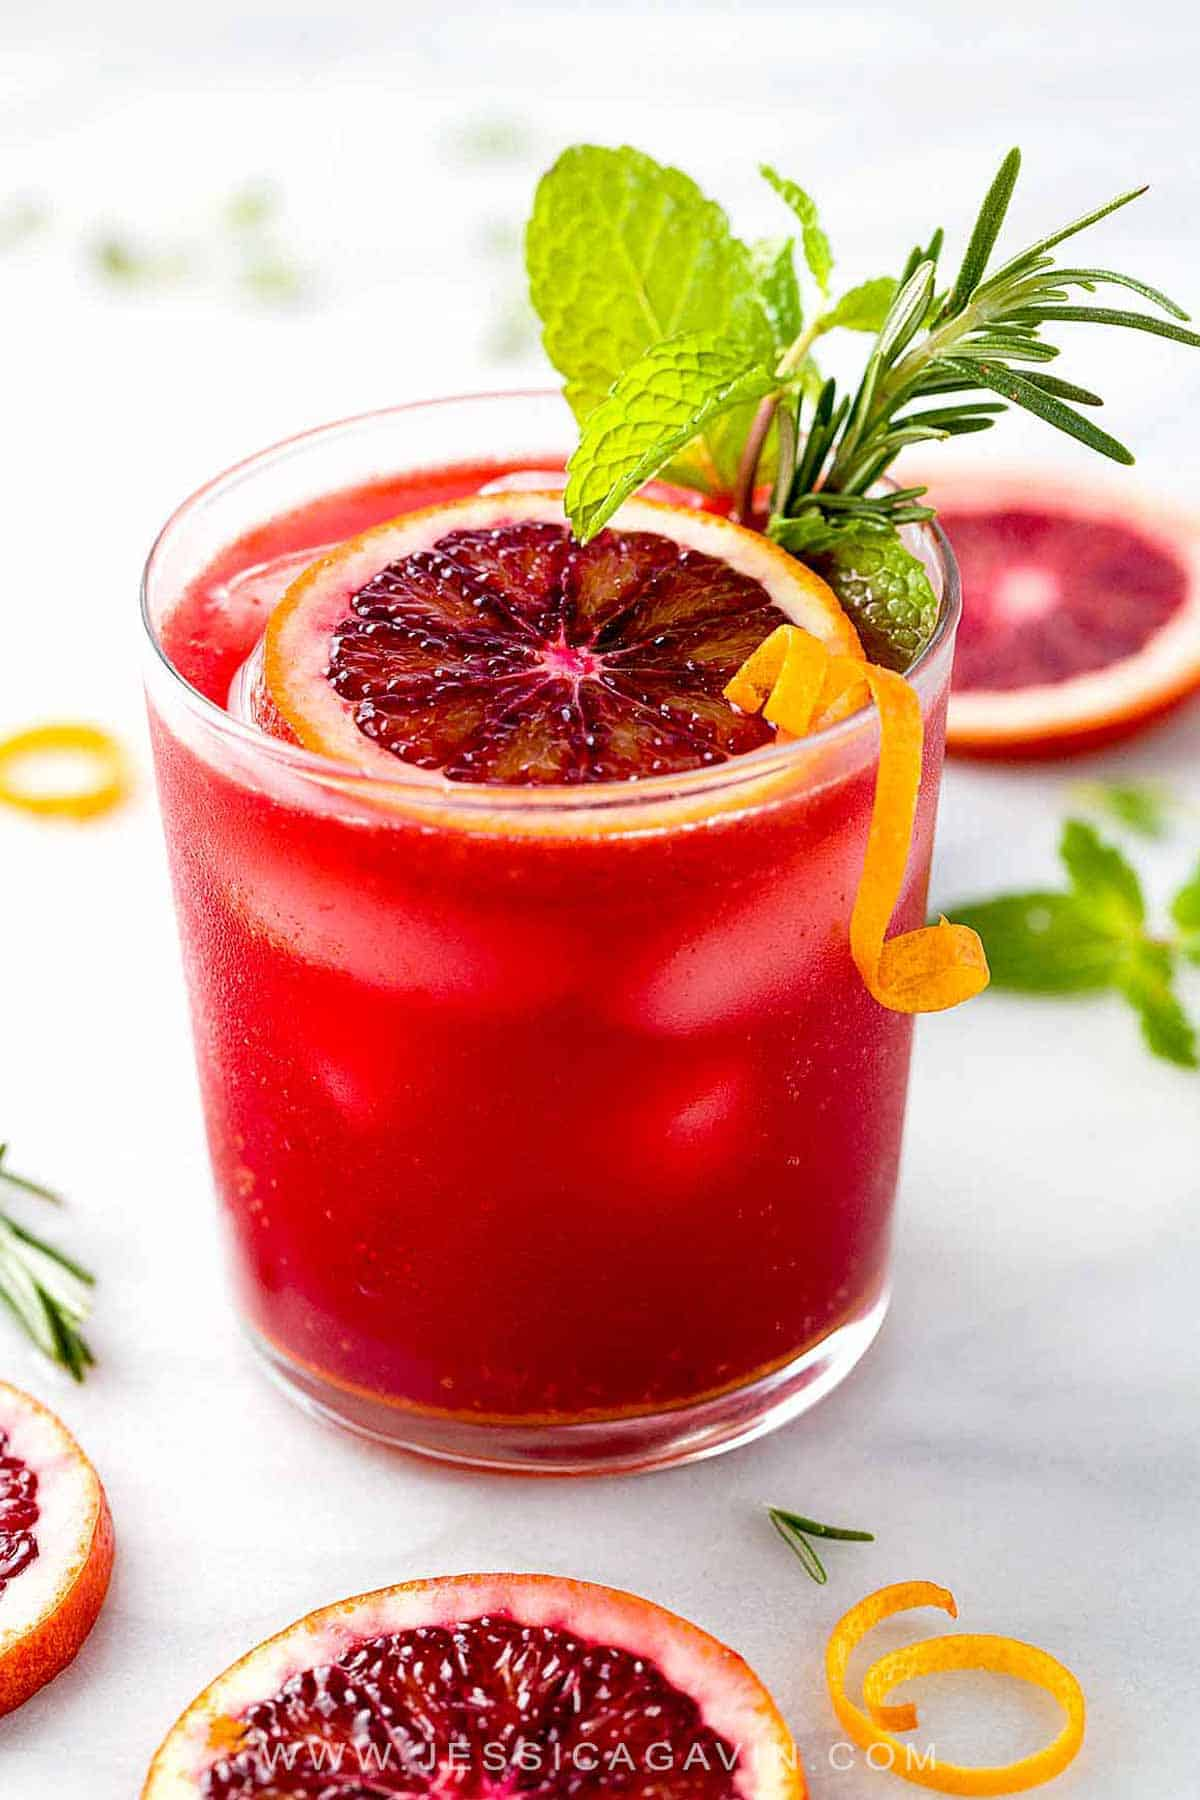 Sparkling Blood Orange Mocktail - A refreshing drink recipe packed with healthy nutrients! Each sip infuses turmeric, ginger, fresh squeezed juice, mint, and rosemary. #bloodorange #mocktail #cocktail #drink